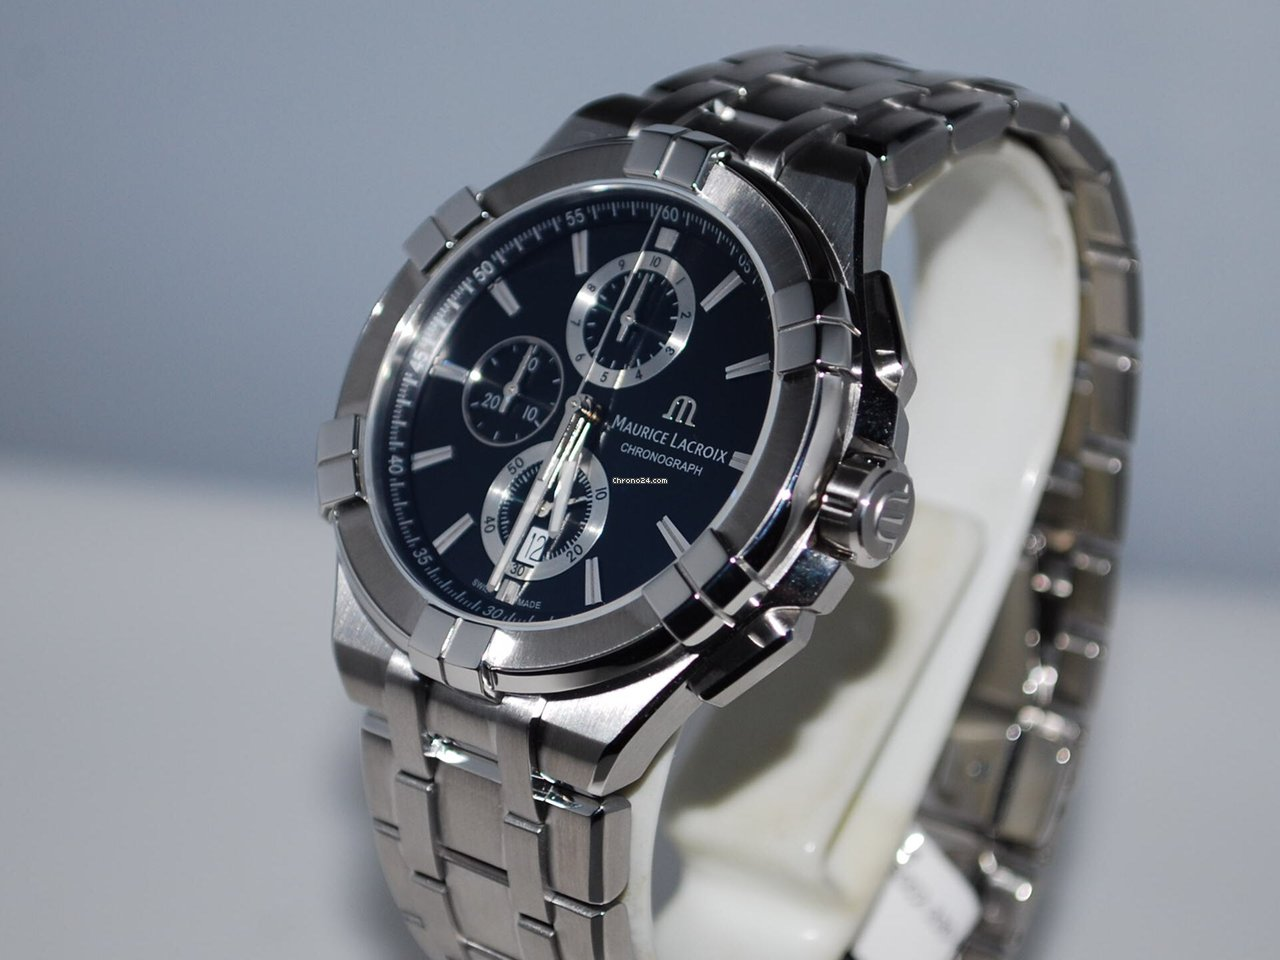 Maurice Lacroix Aikon Chronograph For 1 226 For Sale From